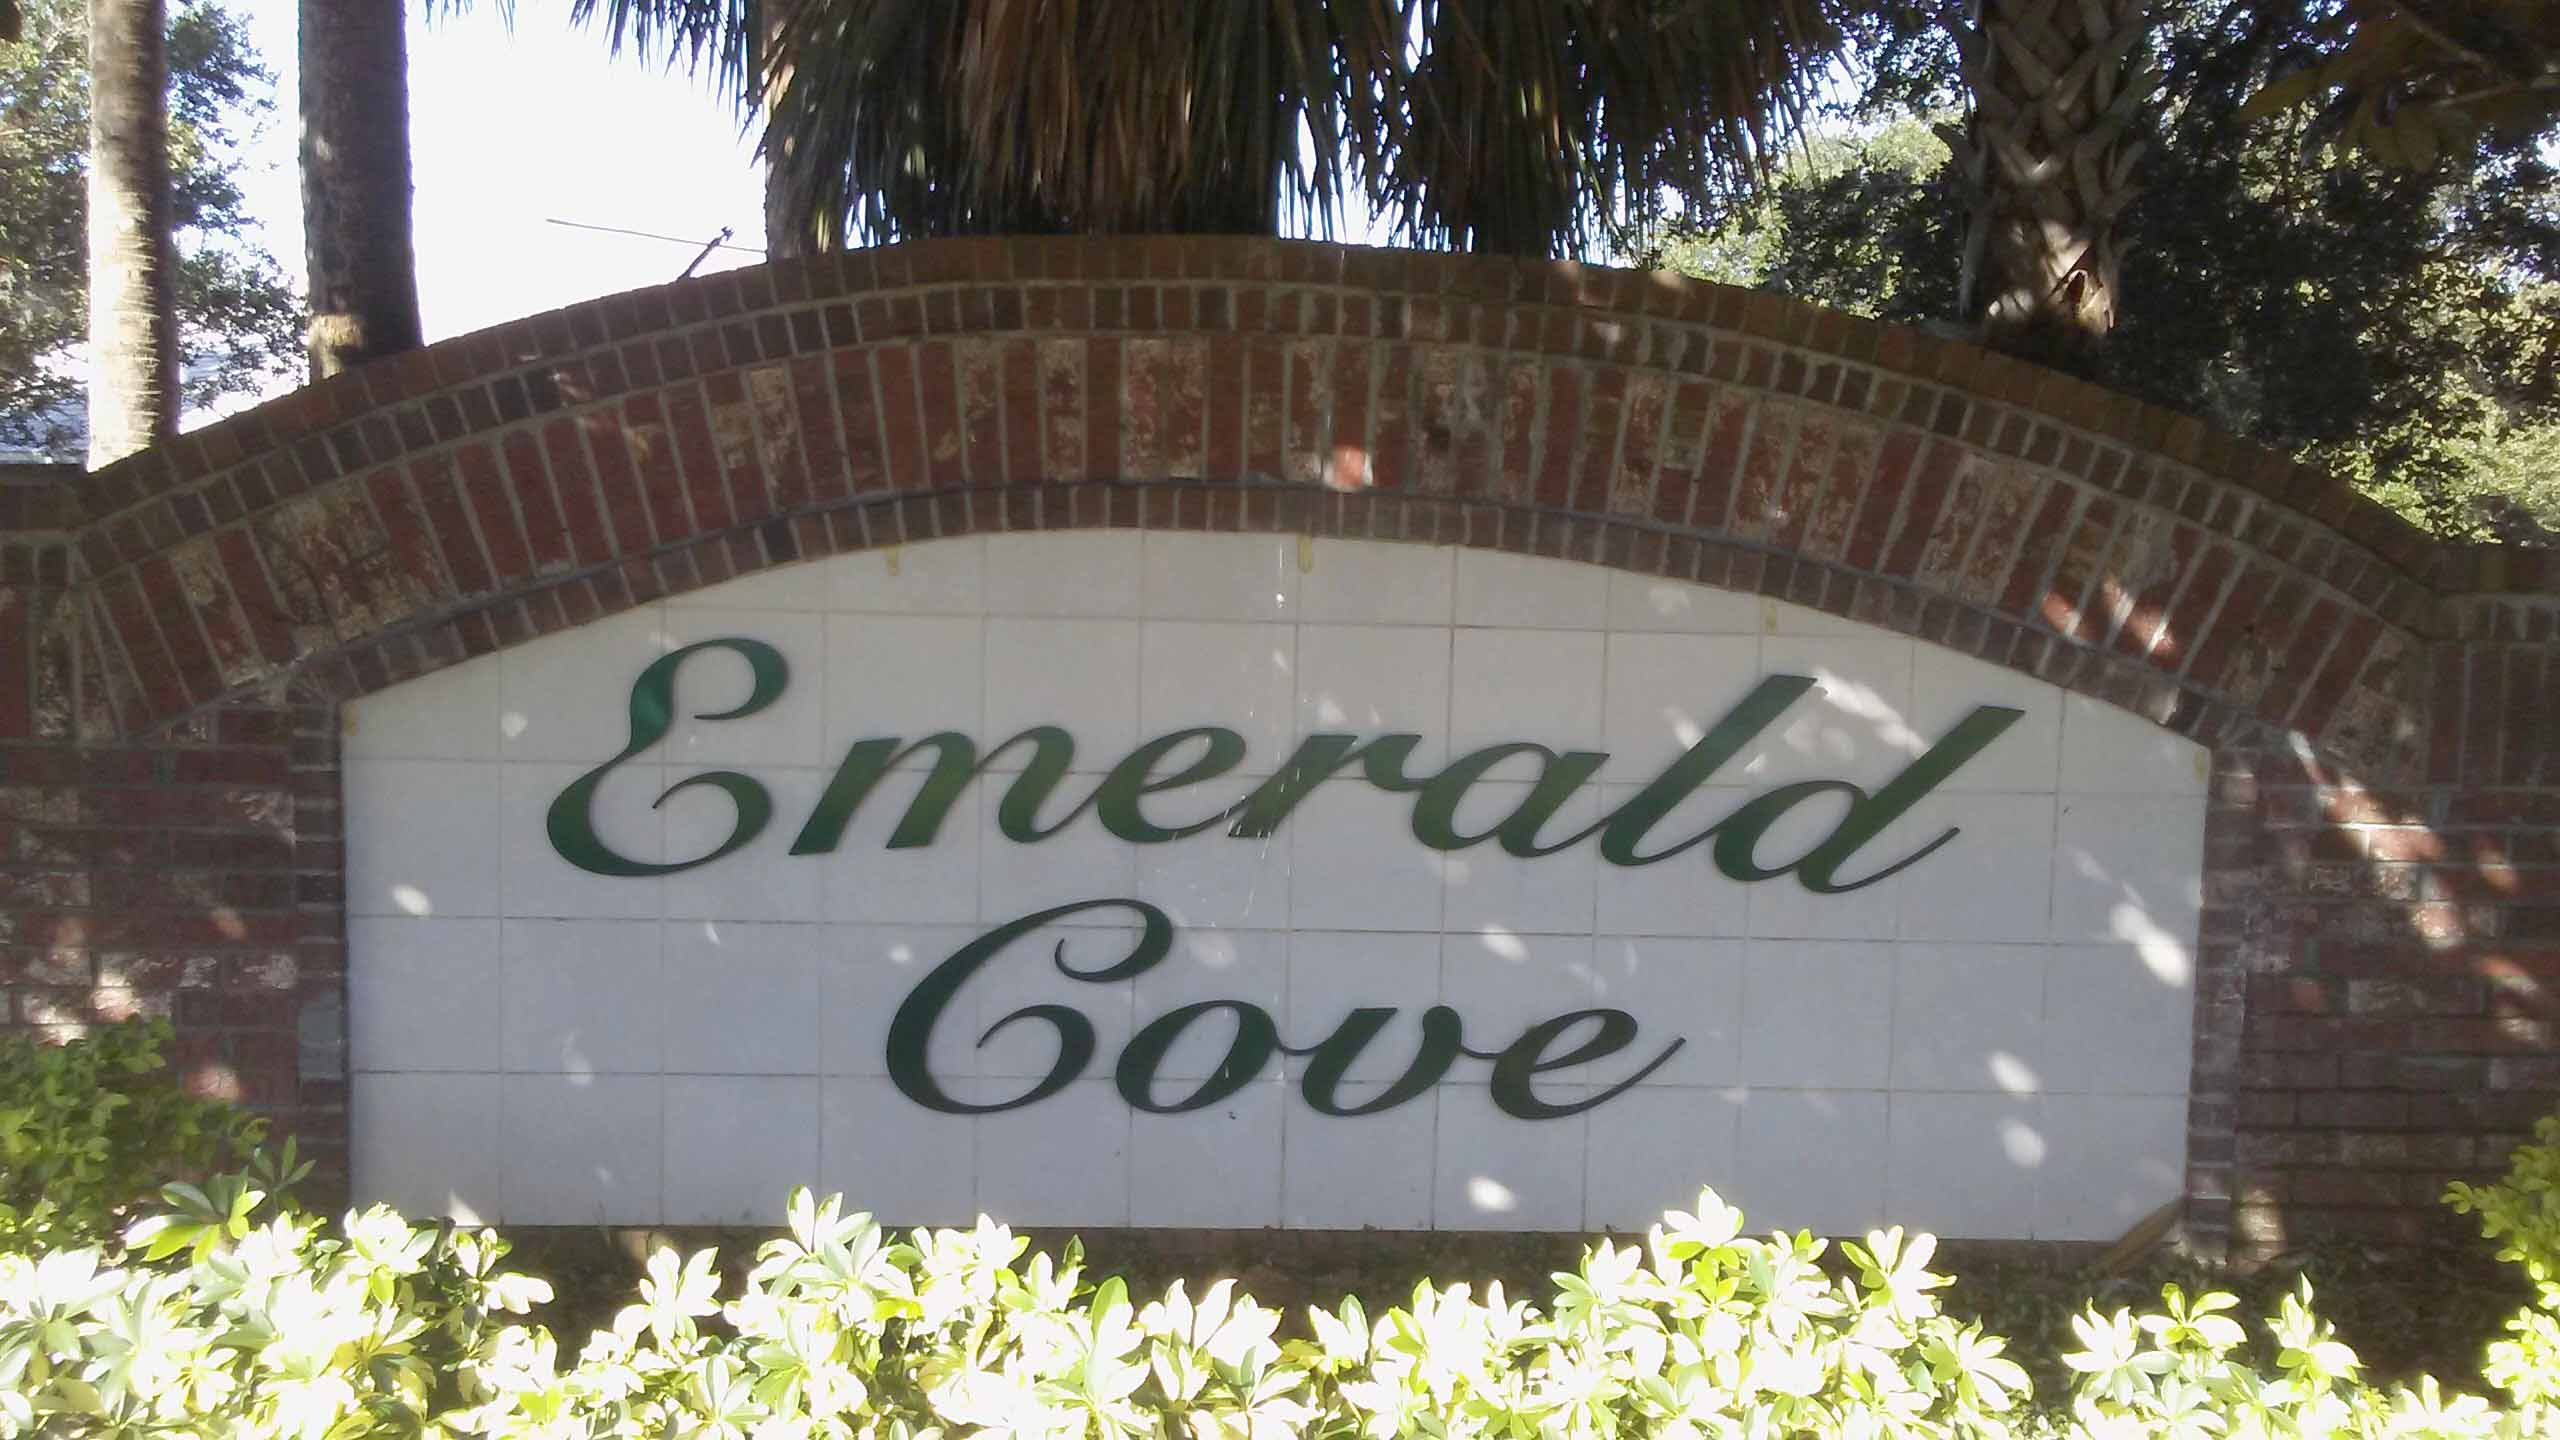 Emerald Cove, Apopka, Florida 32712